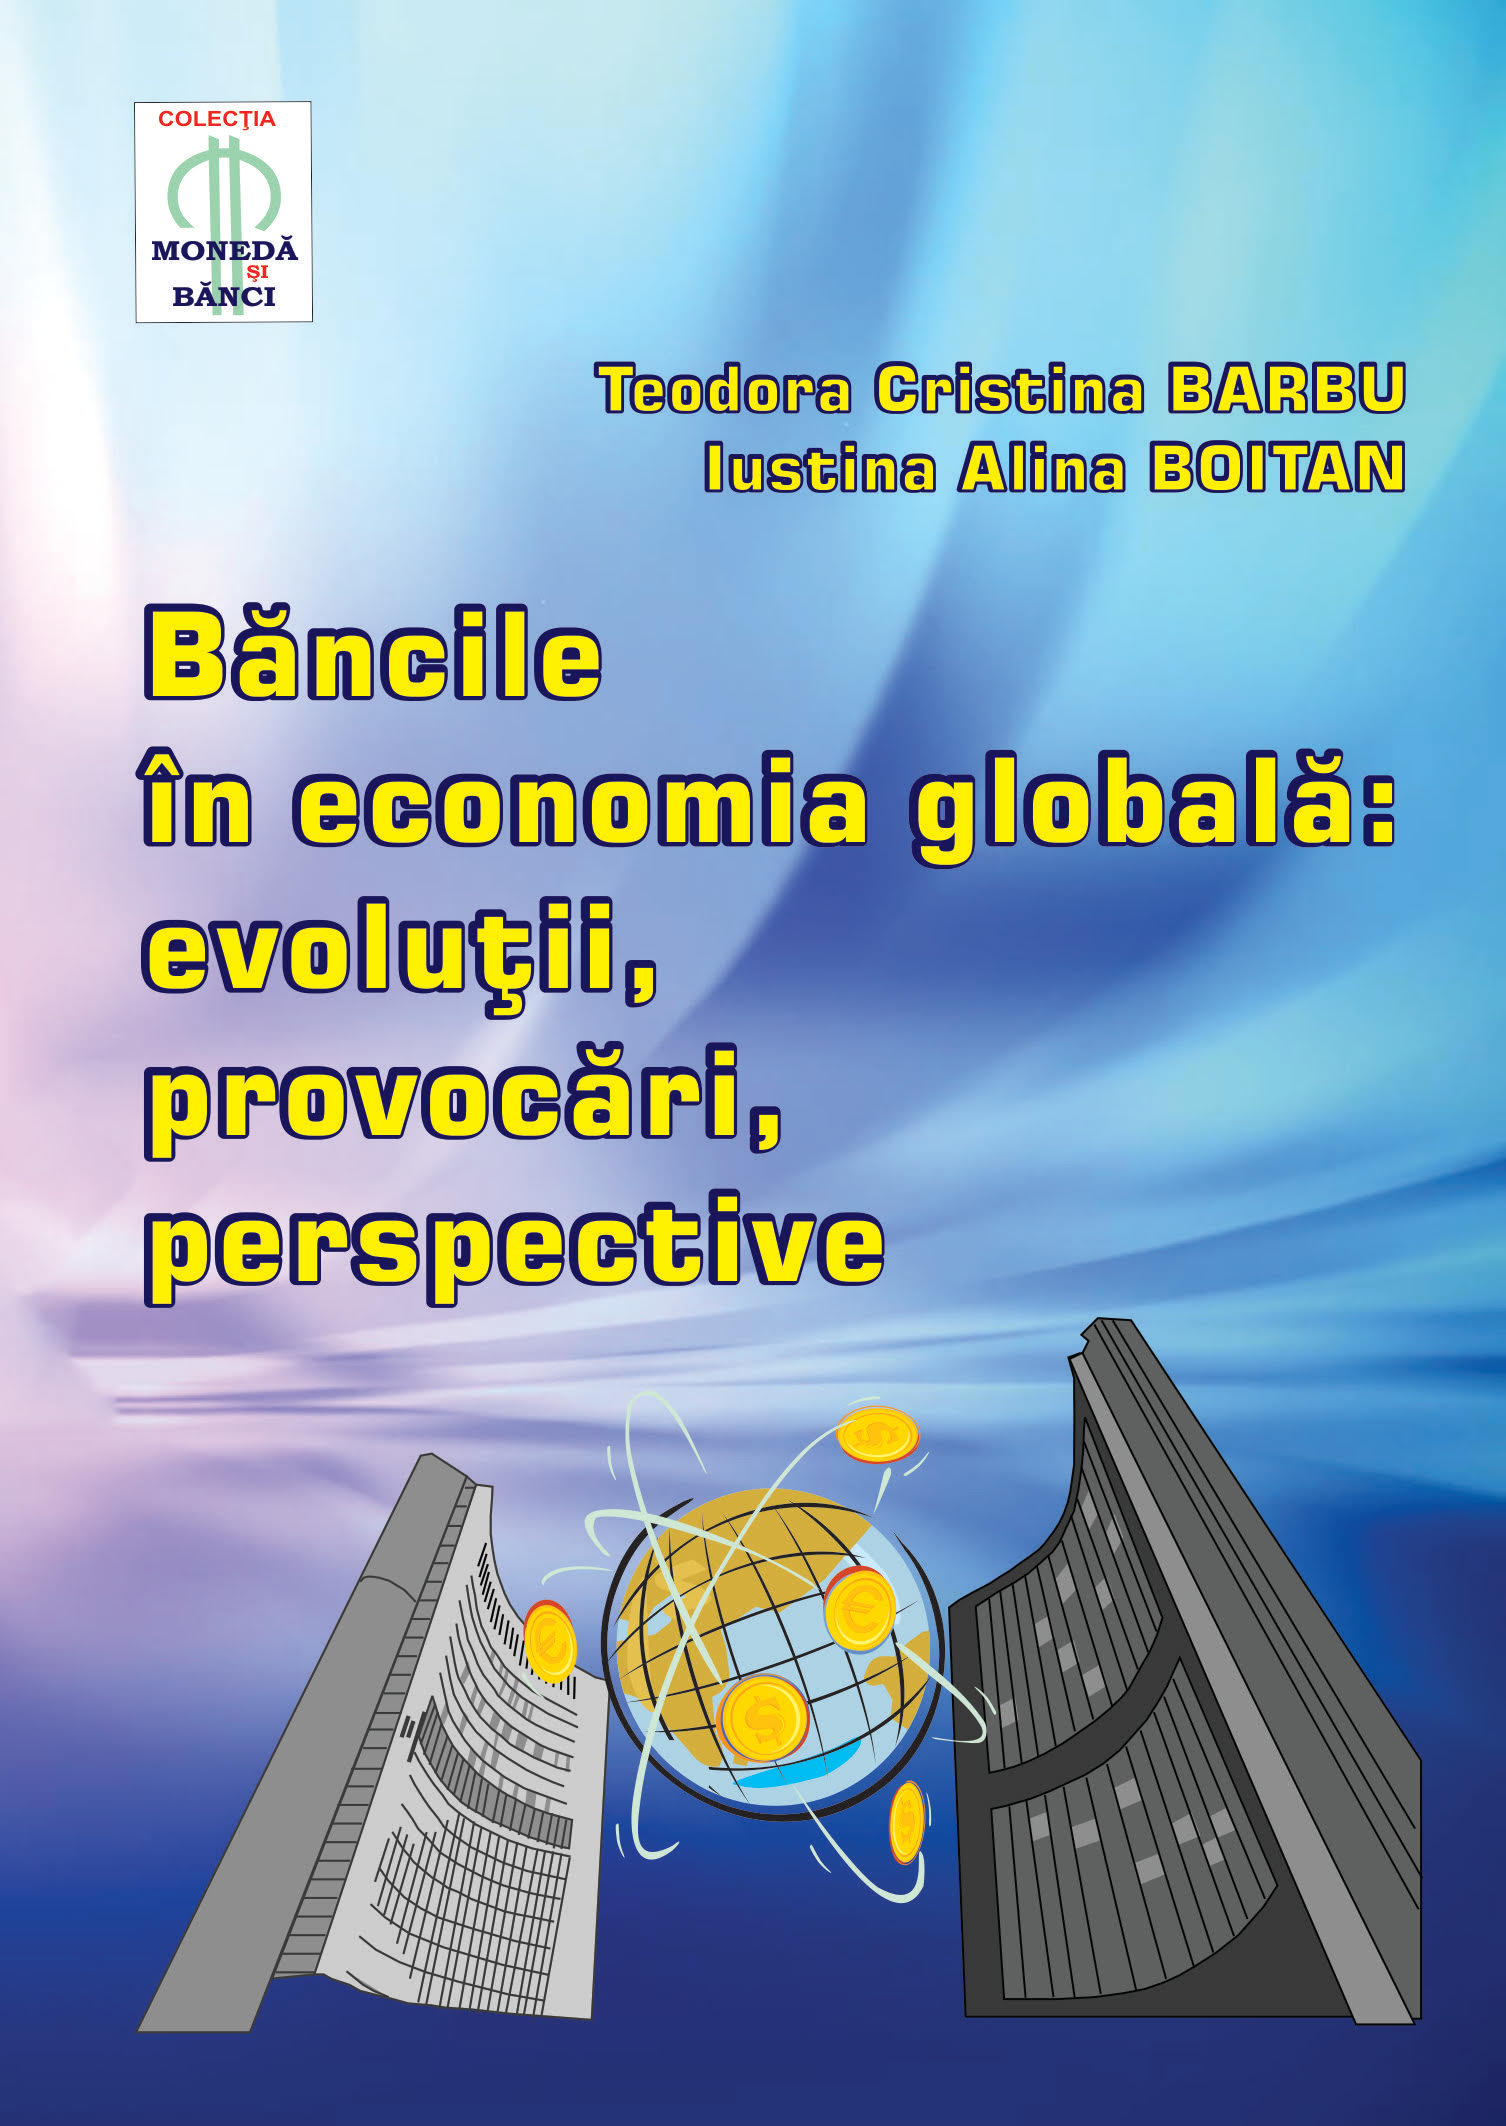 Banks in the Global Economy: evolutions, challenges, trends